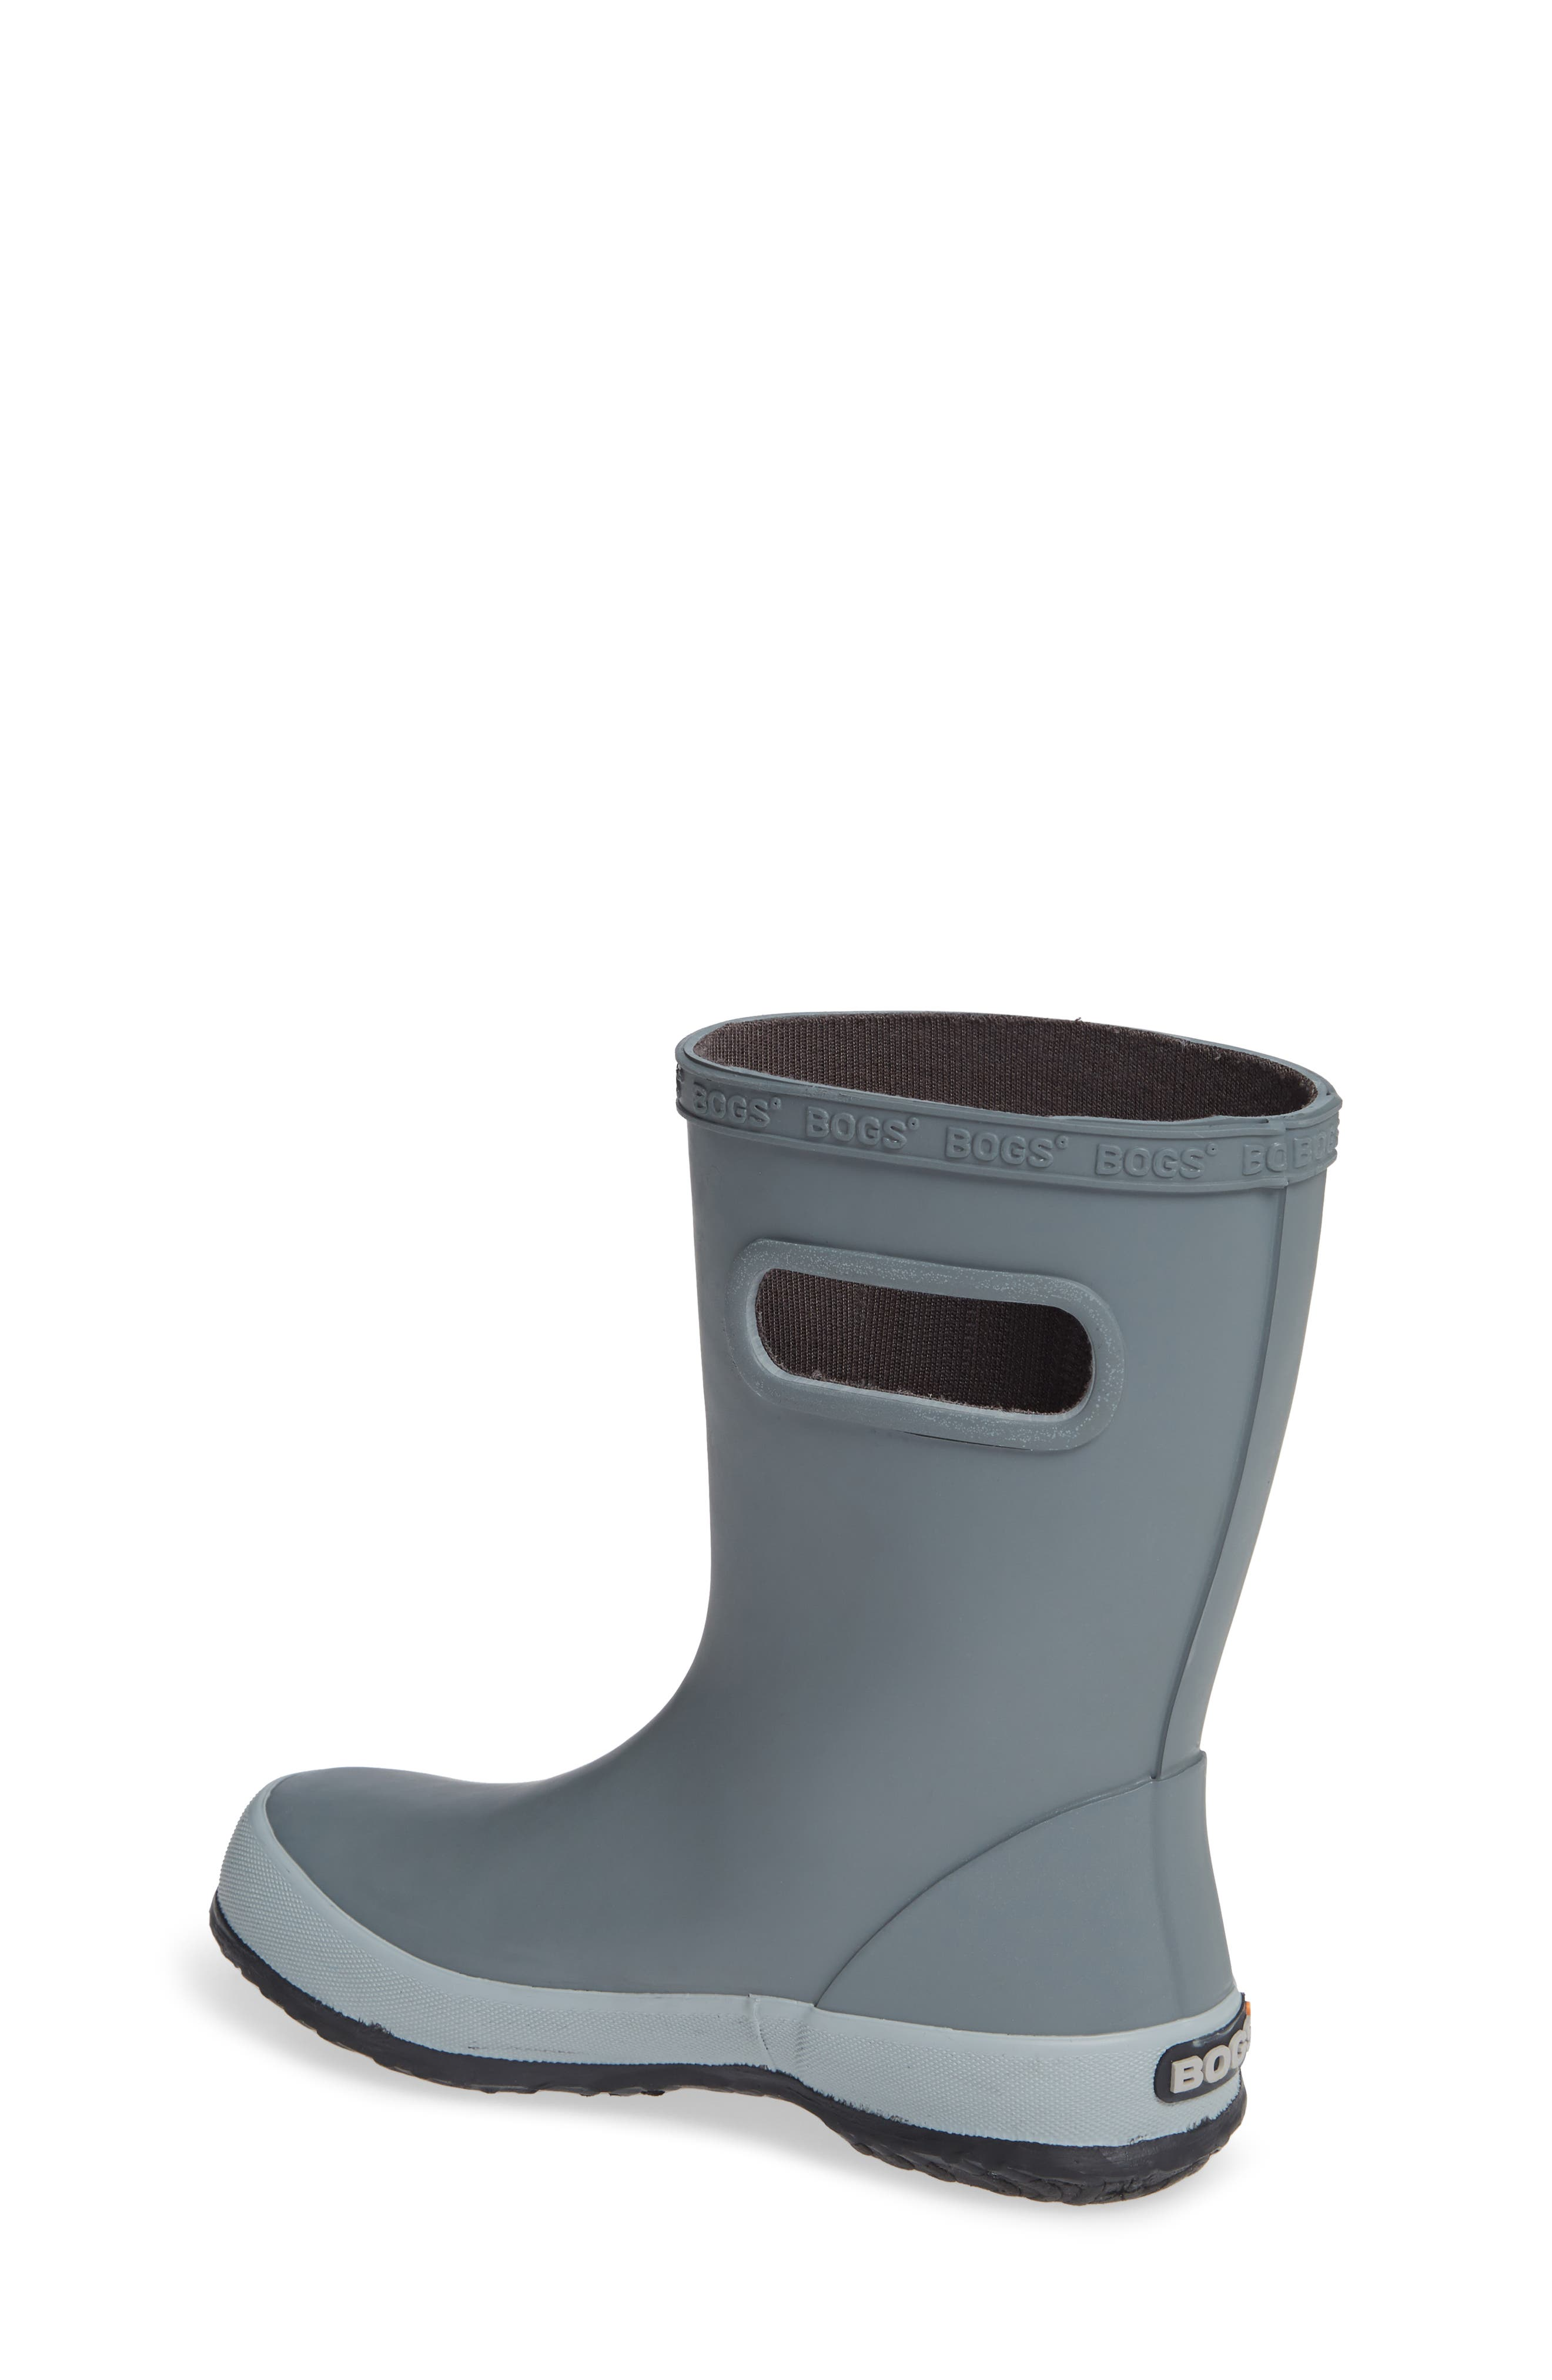 Skipper Solid Rubber Rain Boot,                             Alternate thumbnail 2, color,                             GRAY